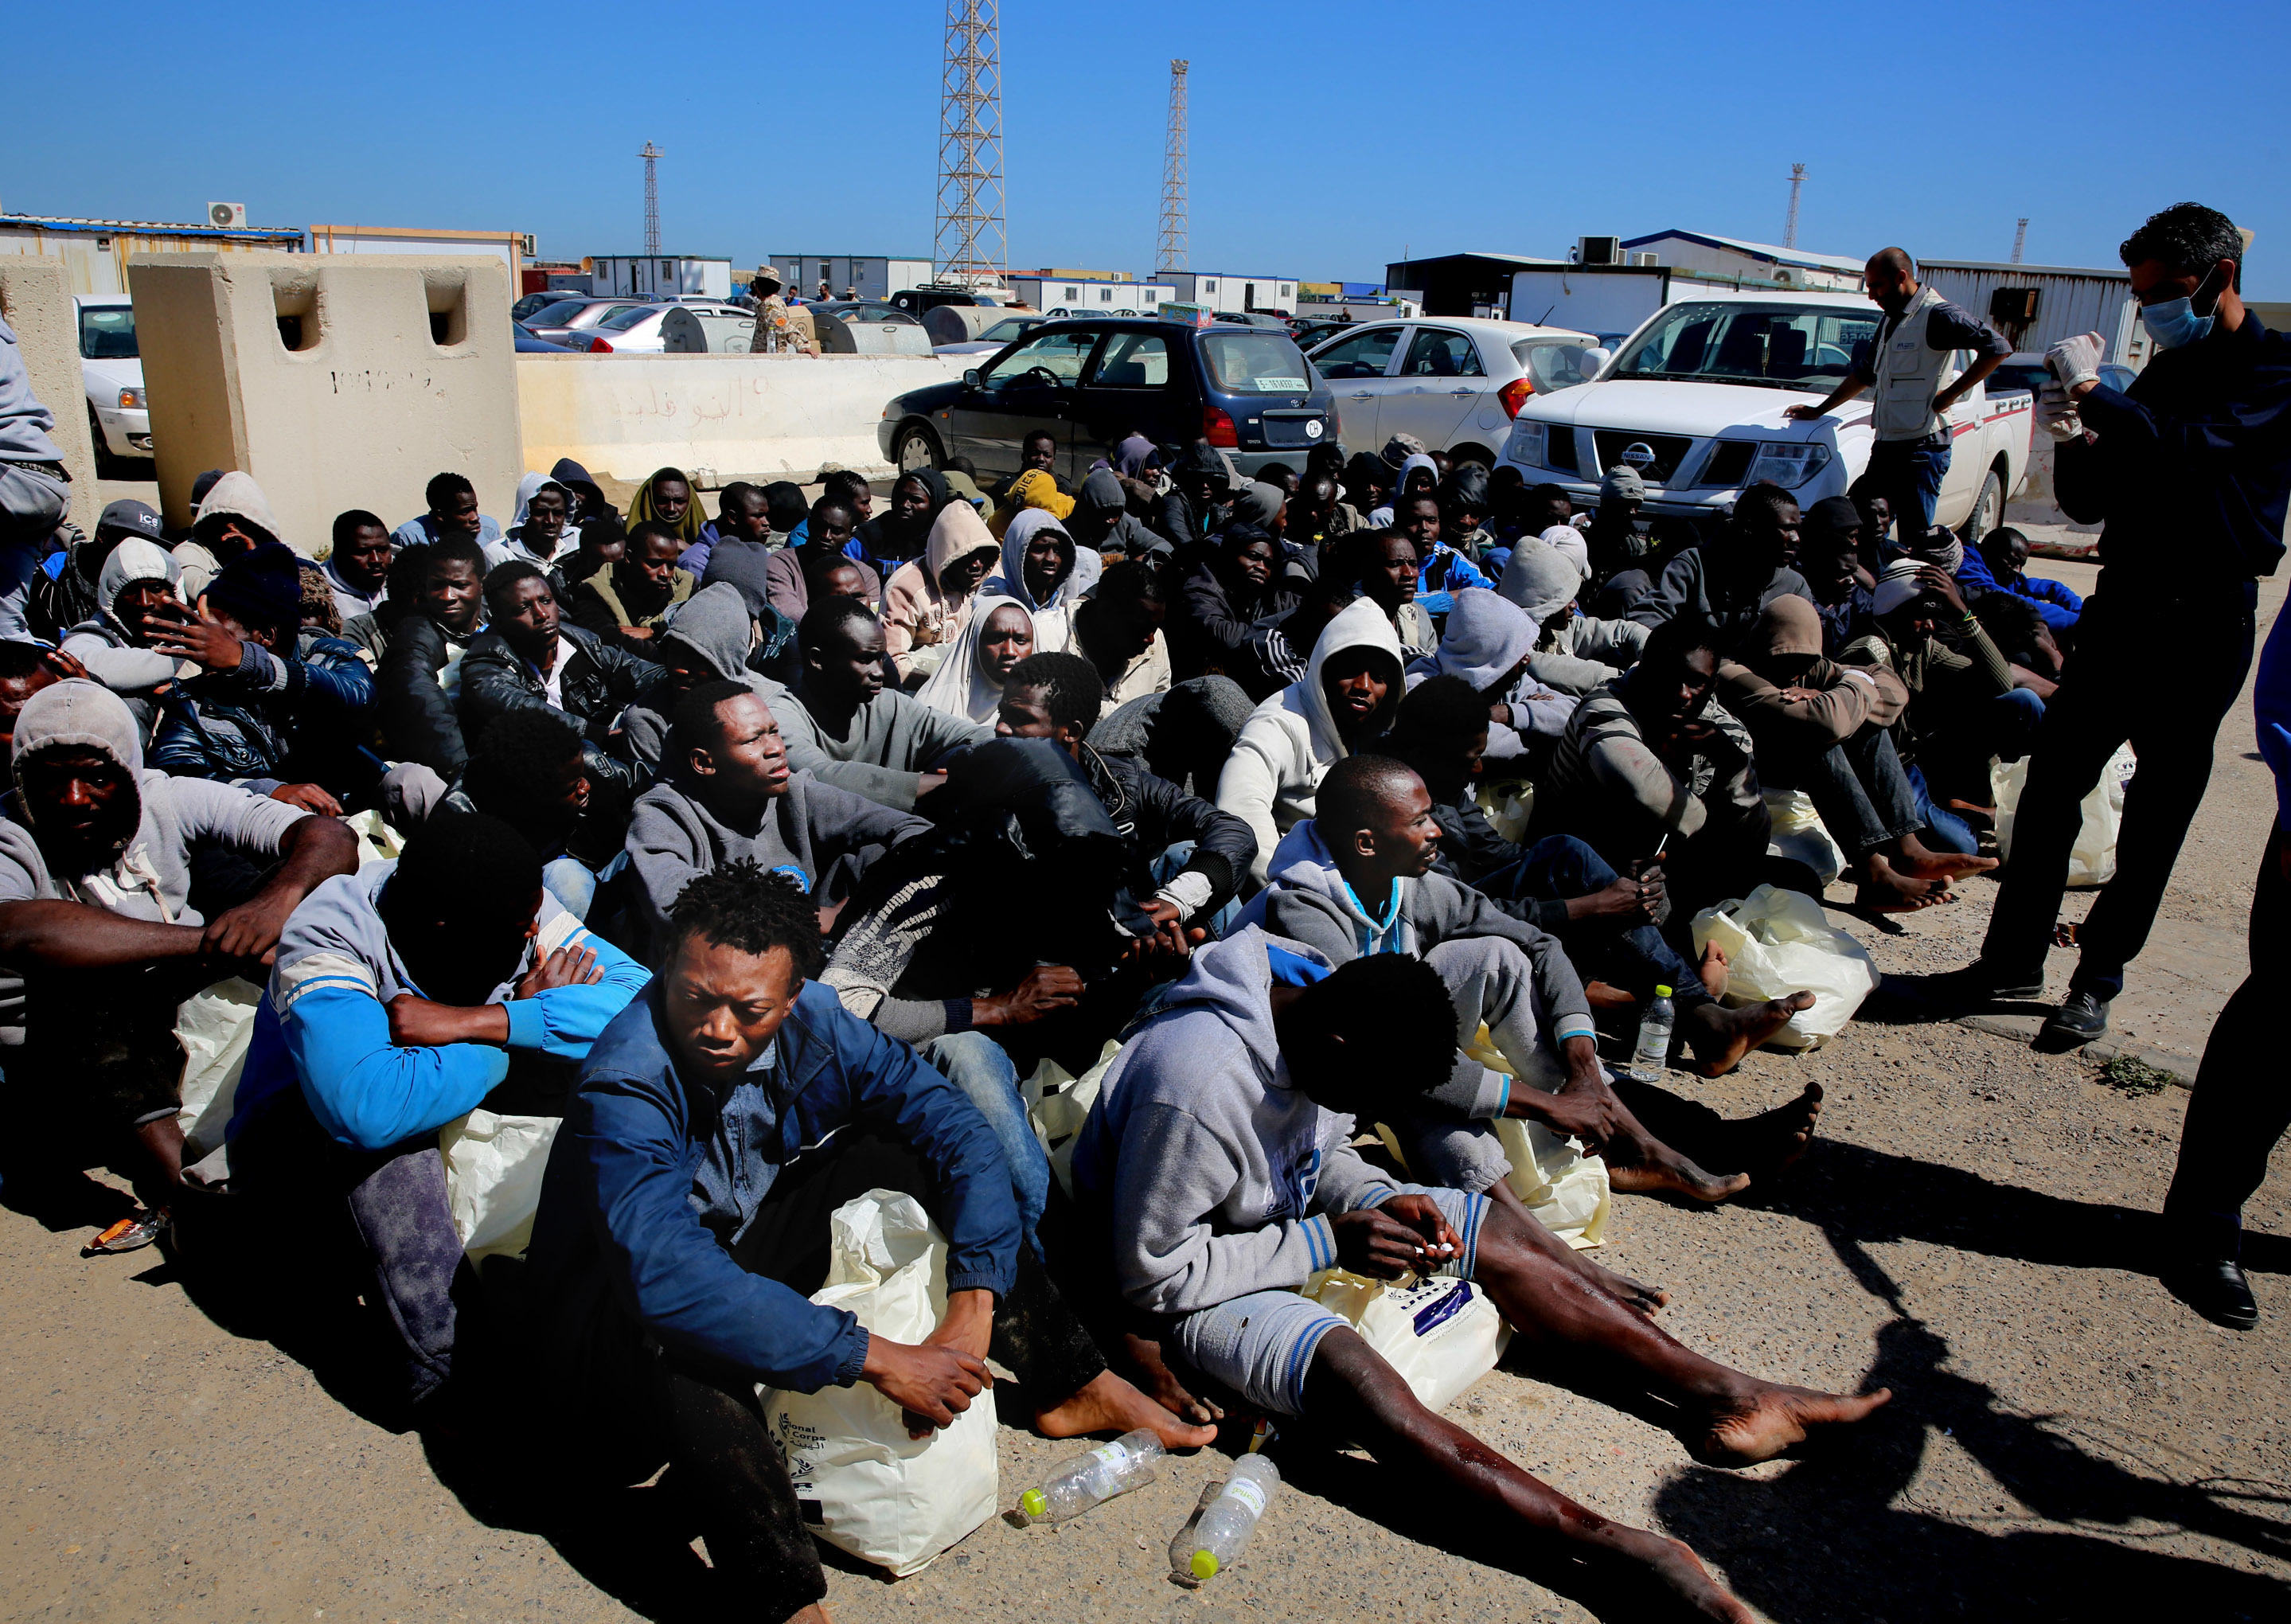 African illegal migrants wait to receive medial assistance after being rescued by coast guards, in Tripoli, Libya, April 11, 2016. More than 100 migrants were rescued by two coastal guards on Monday after their boat started sinking in the sea.